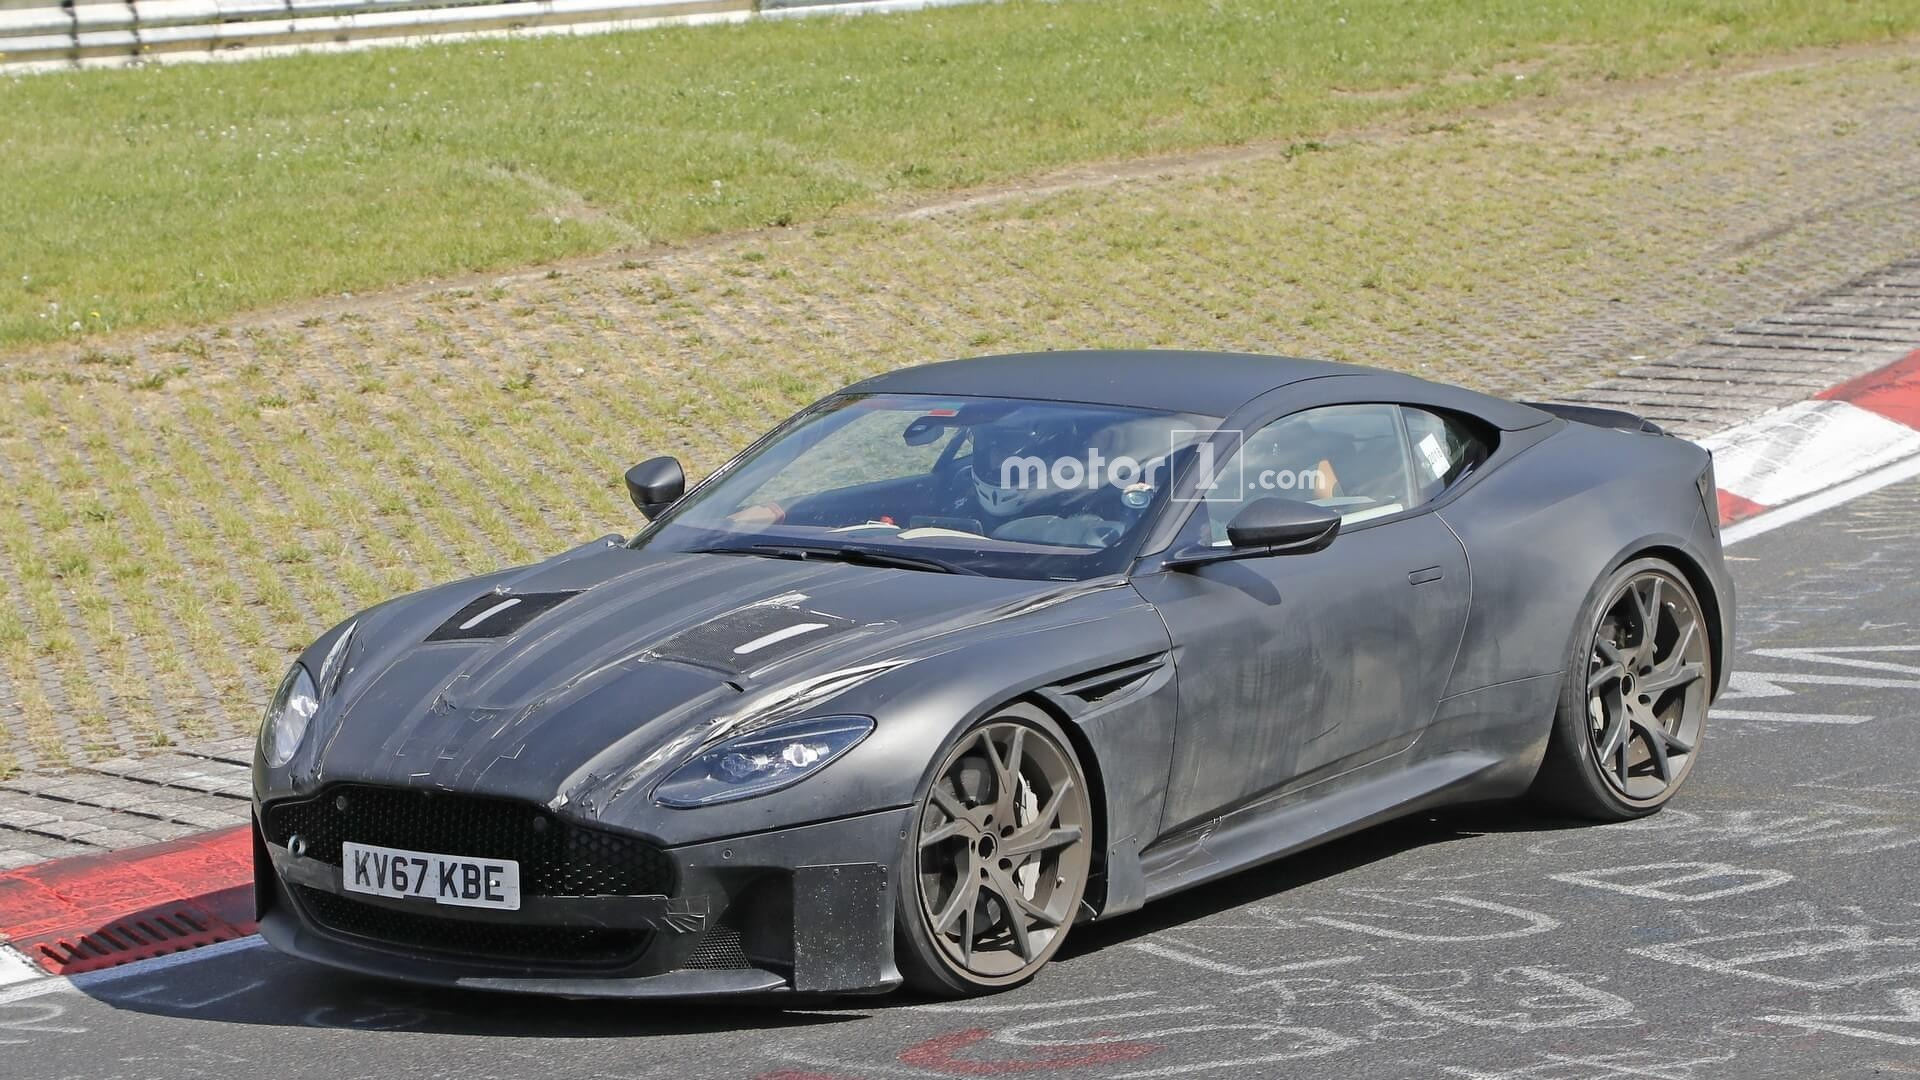 2019 - [Aston Martin] DBS Superleggera Aston-martin-dbs-superleggera-spy-photo